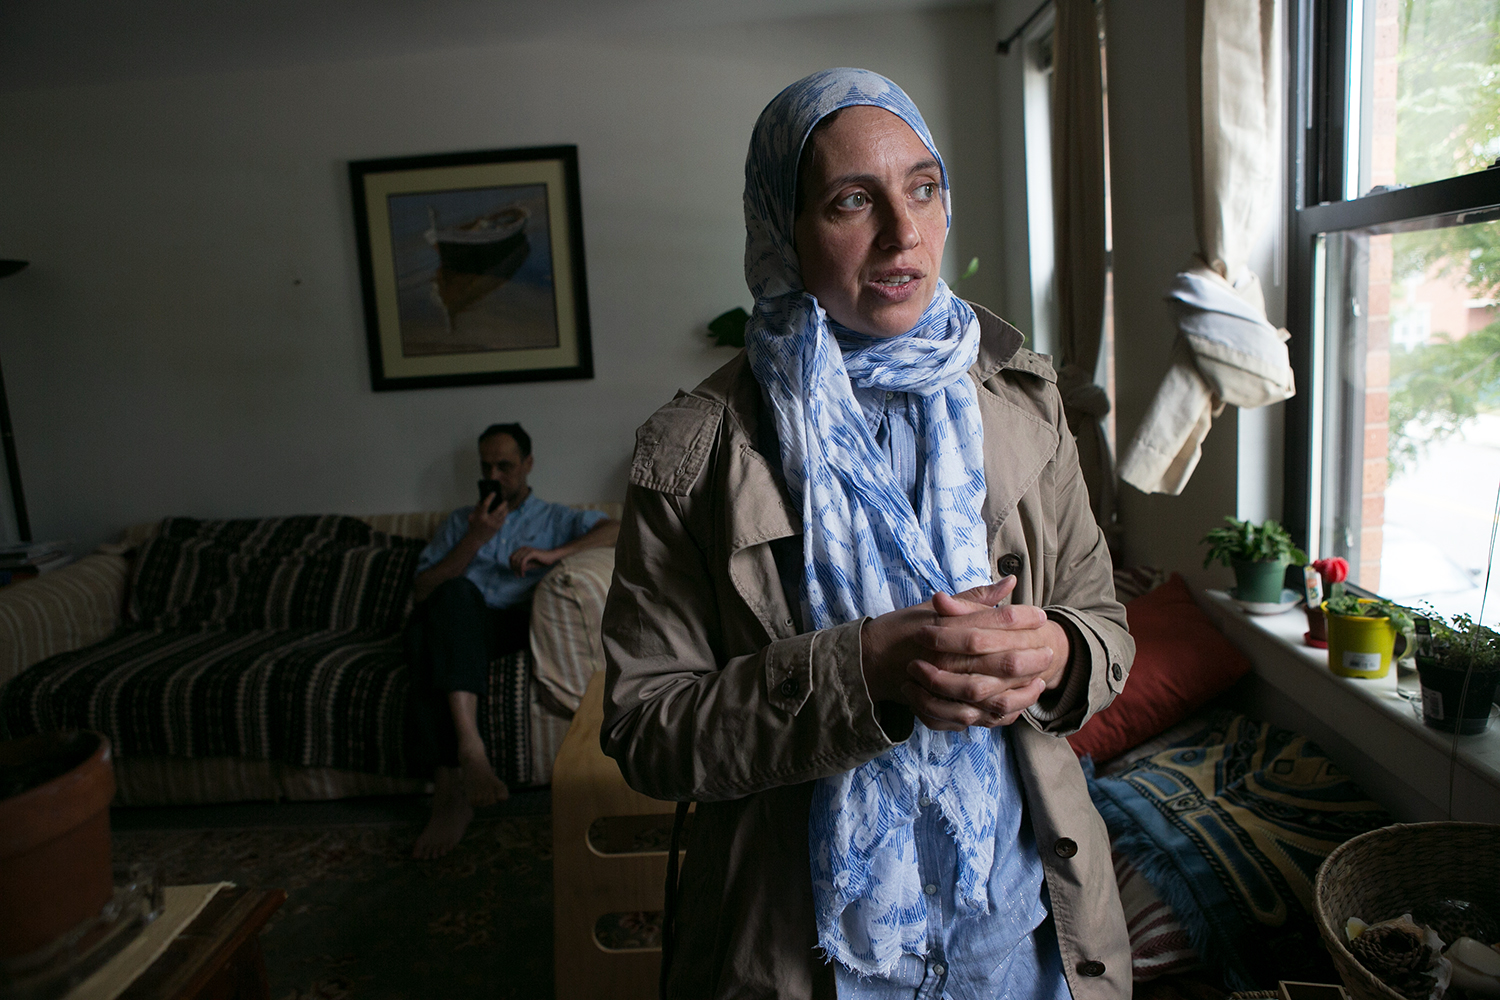 Community organizer Magdalena Ayed is pictured in her East Boston home on June 9, 2016. She says she's happy that city officials and some developers are starting to take climate change seriously. (Photo by Lauren Owens Lambert/GroundTruth)